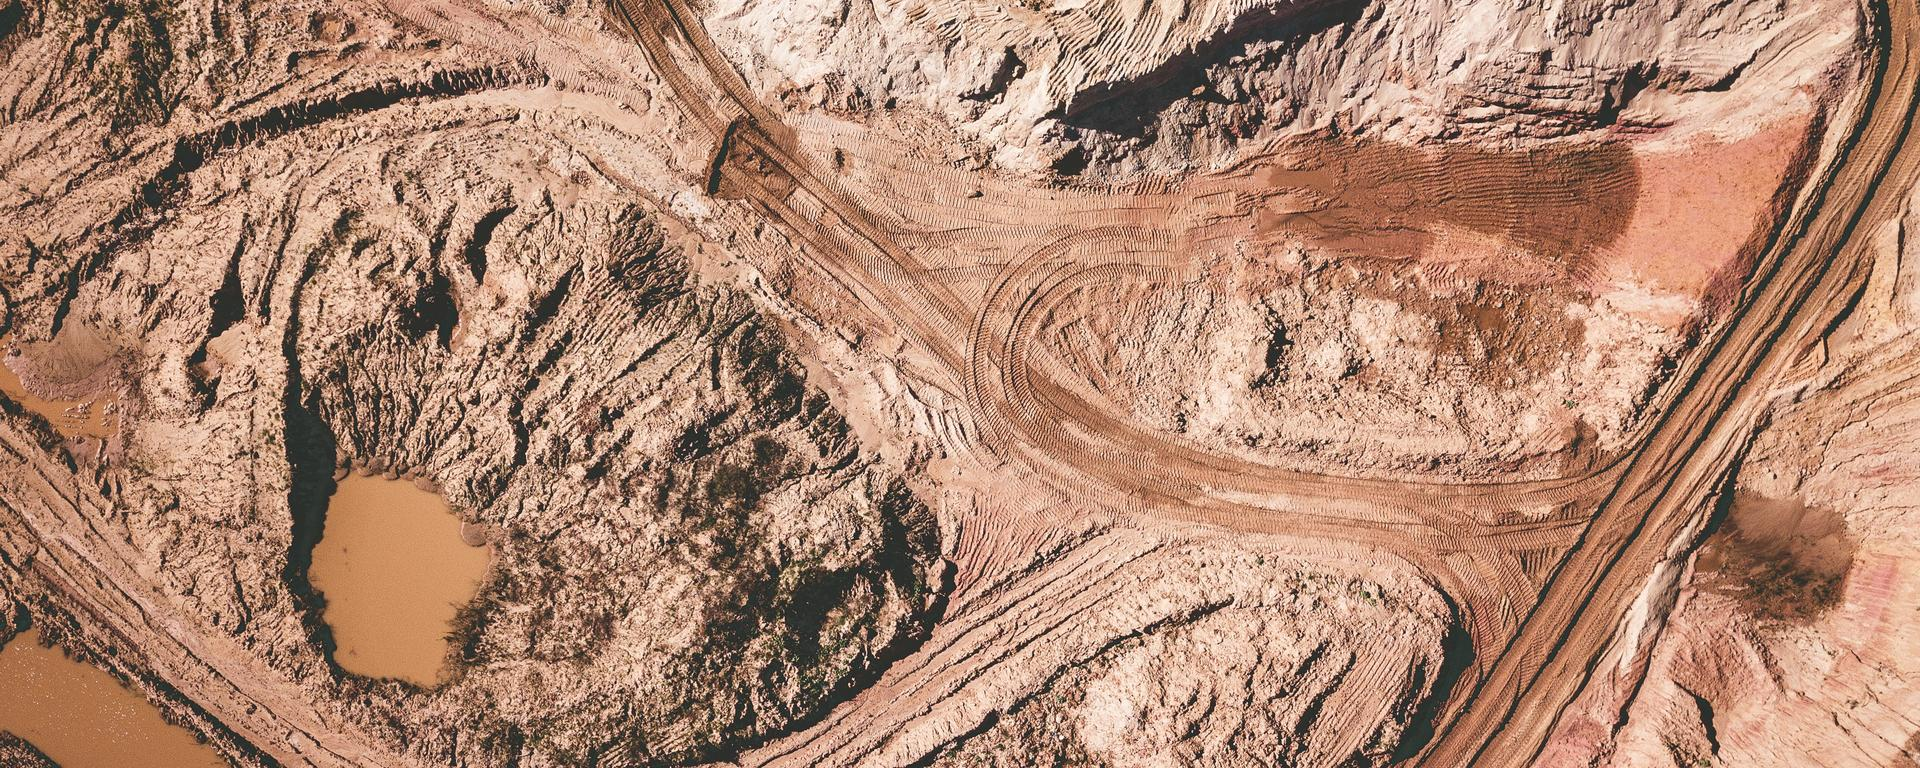 An overhead view of an open pit mine. The ground is brown and rusty-looking, and there are dirt roads leading into and out of the mining area.